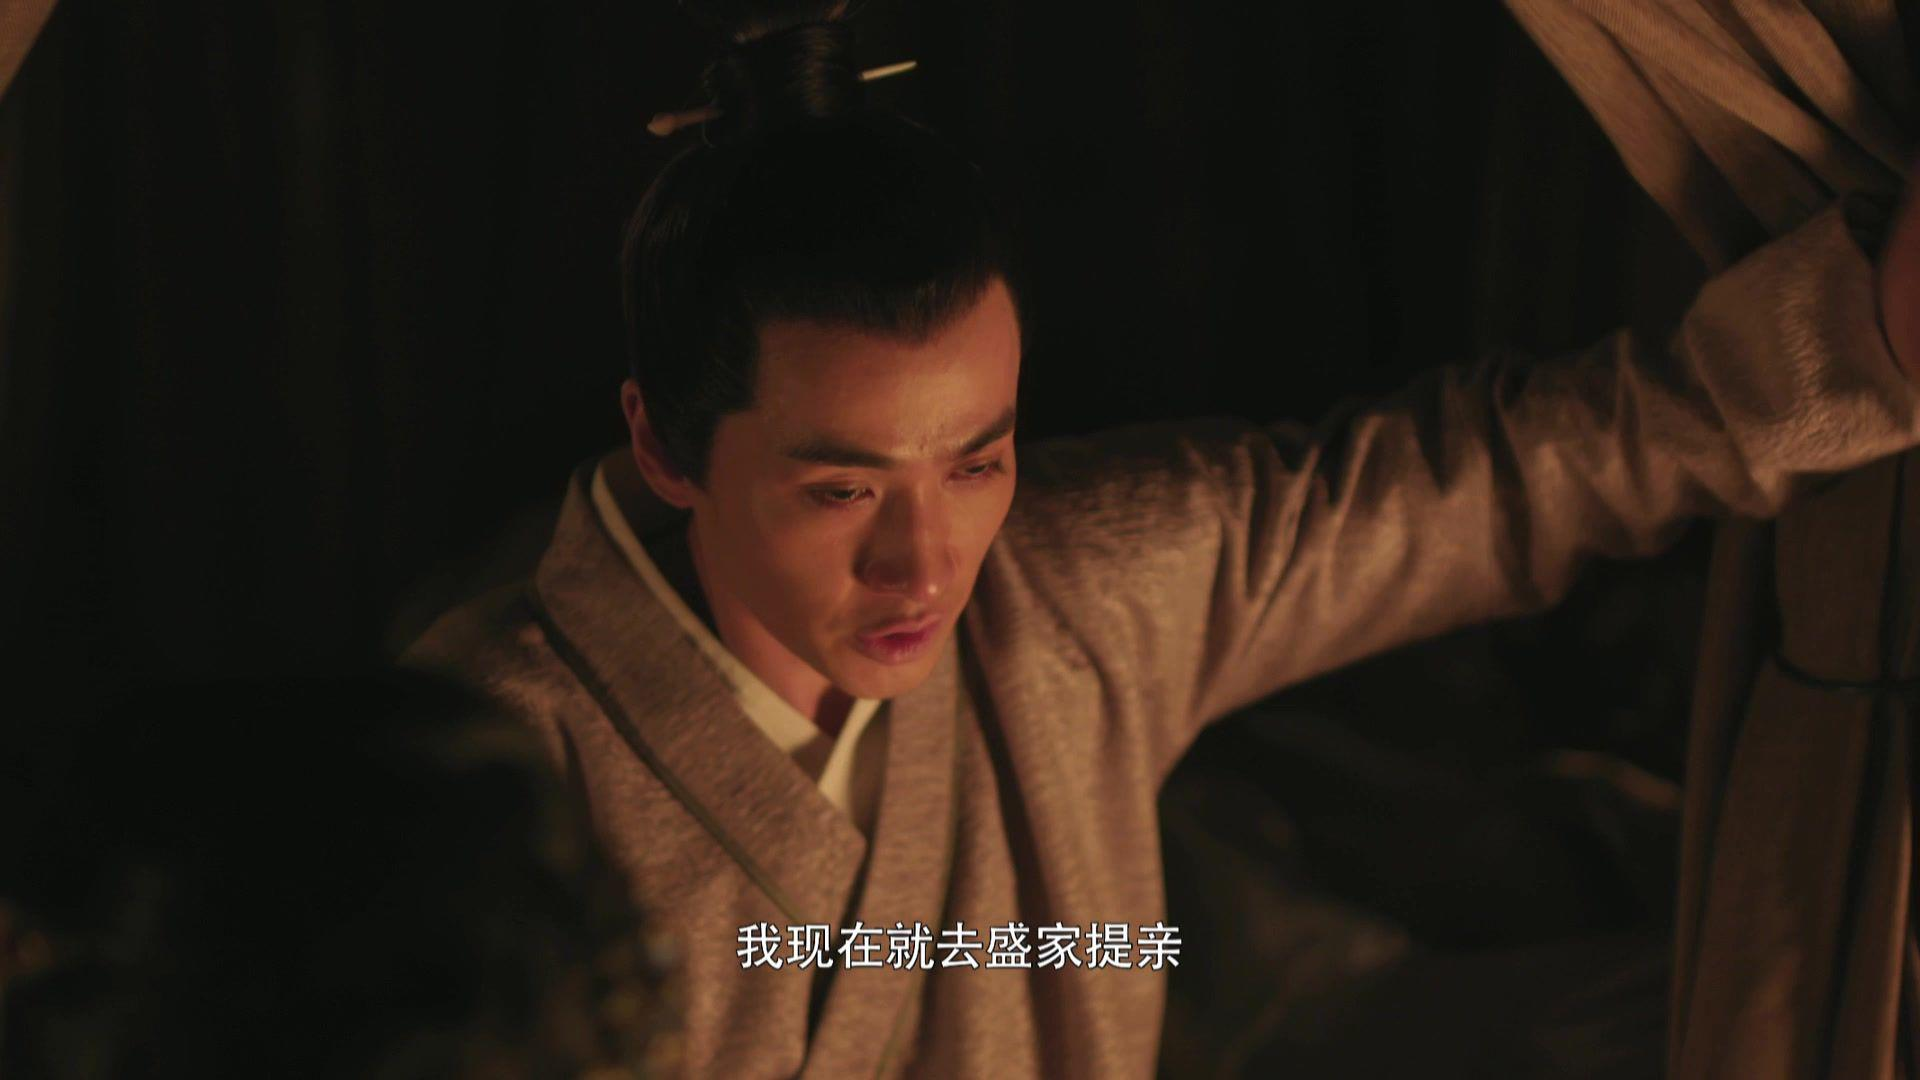 Trailer 4: The Story of Ming Lan